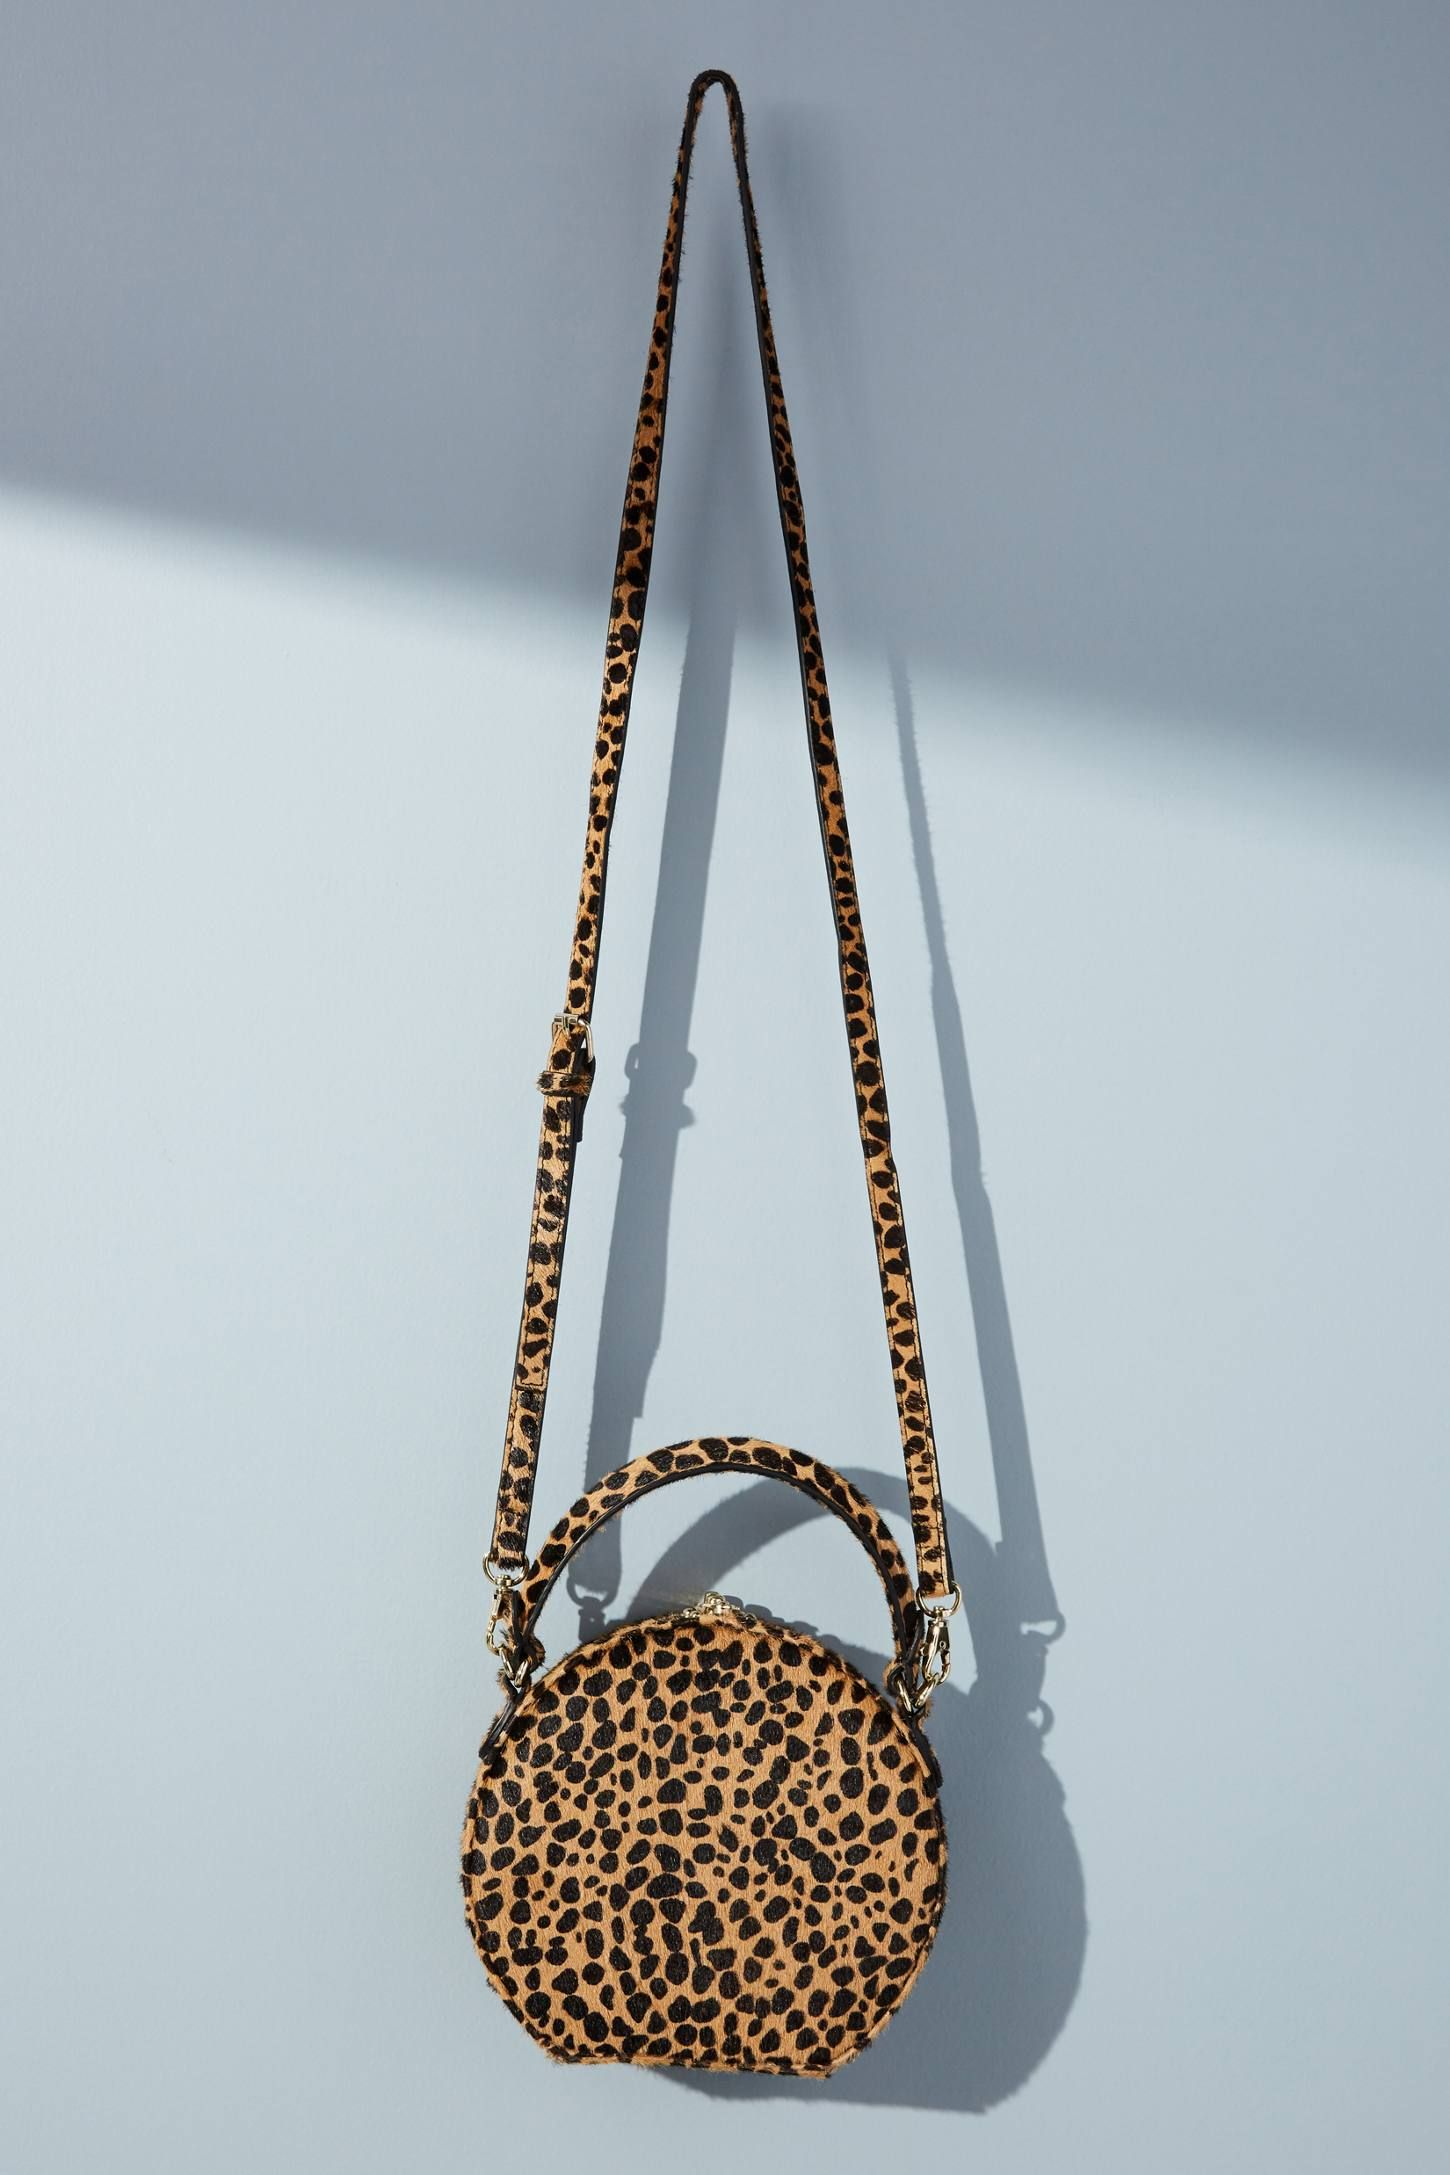 53e9e8d90708 Shop the Circular Leopard-Print Crossbody Bag and more Anthropologie at  Anthropologie today. Read customer reviews, discover product details and  more.